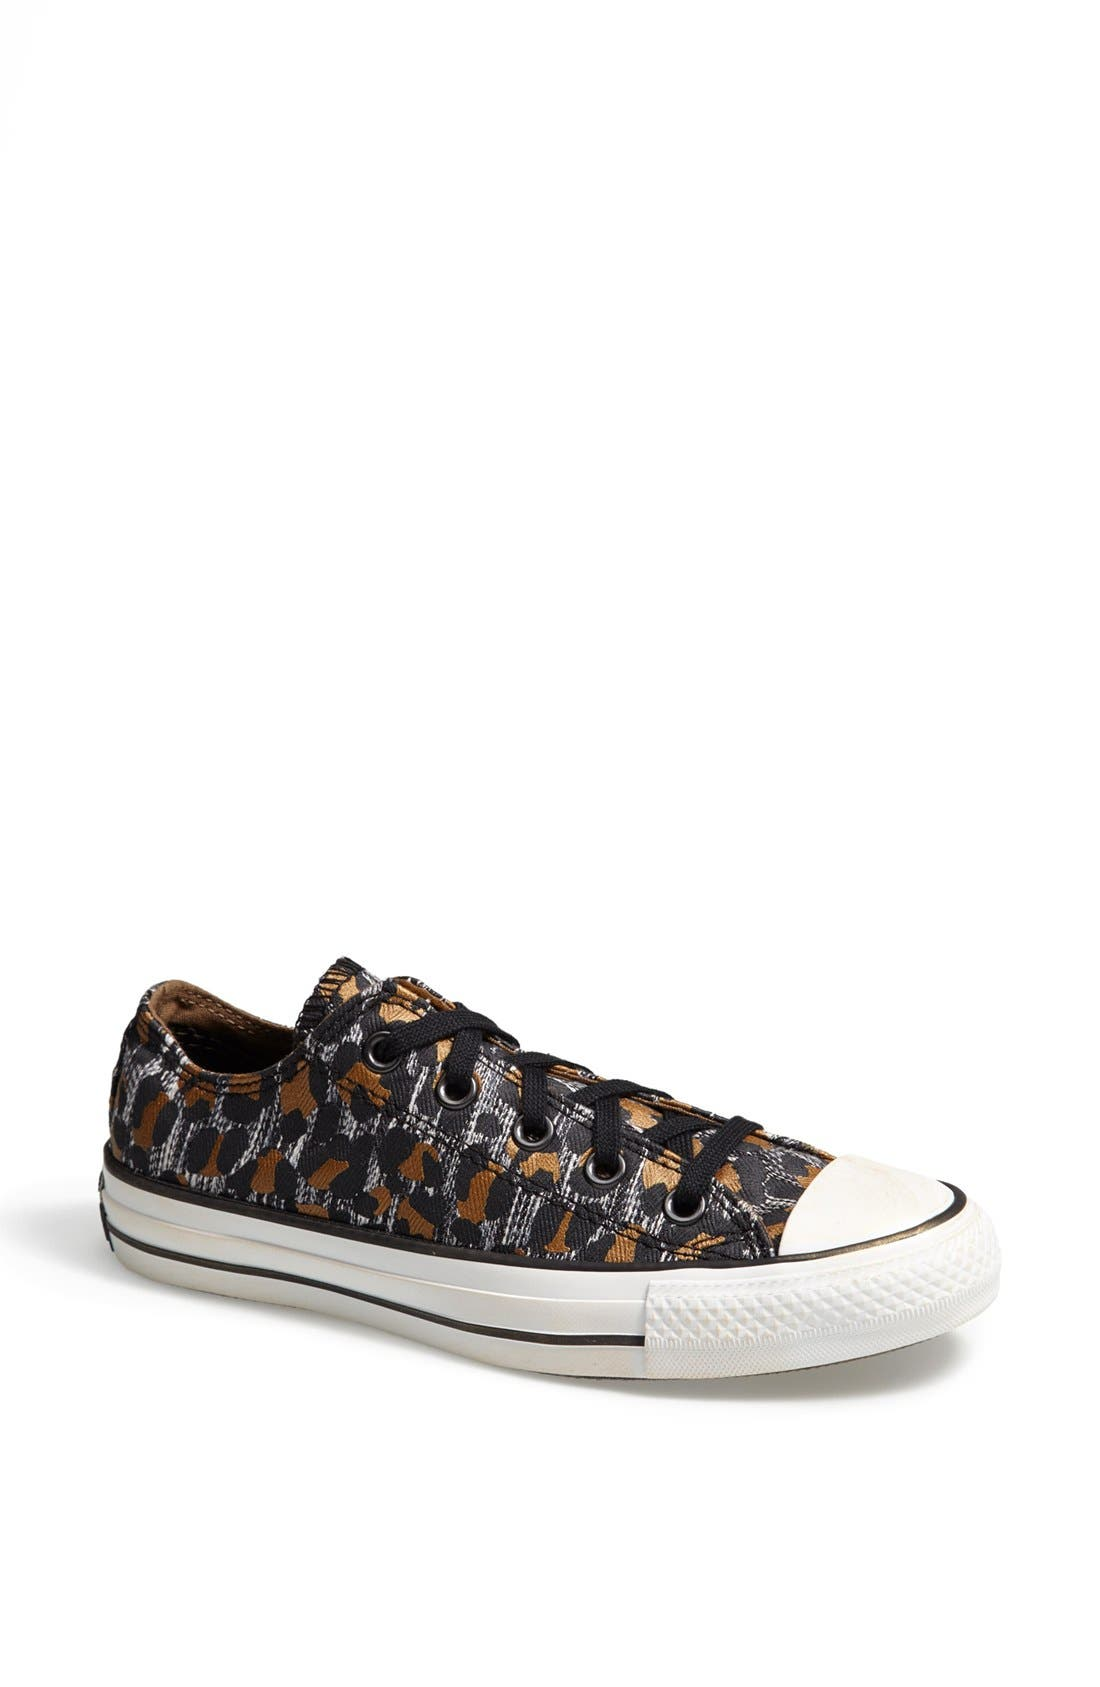 Main Image - Converse Chuck Taylor® All Star® Low Print Sneaker (Women)